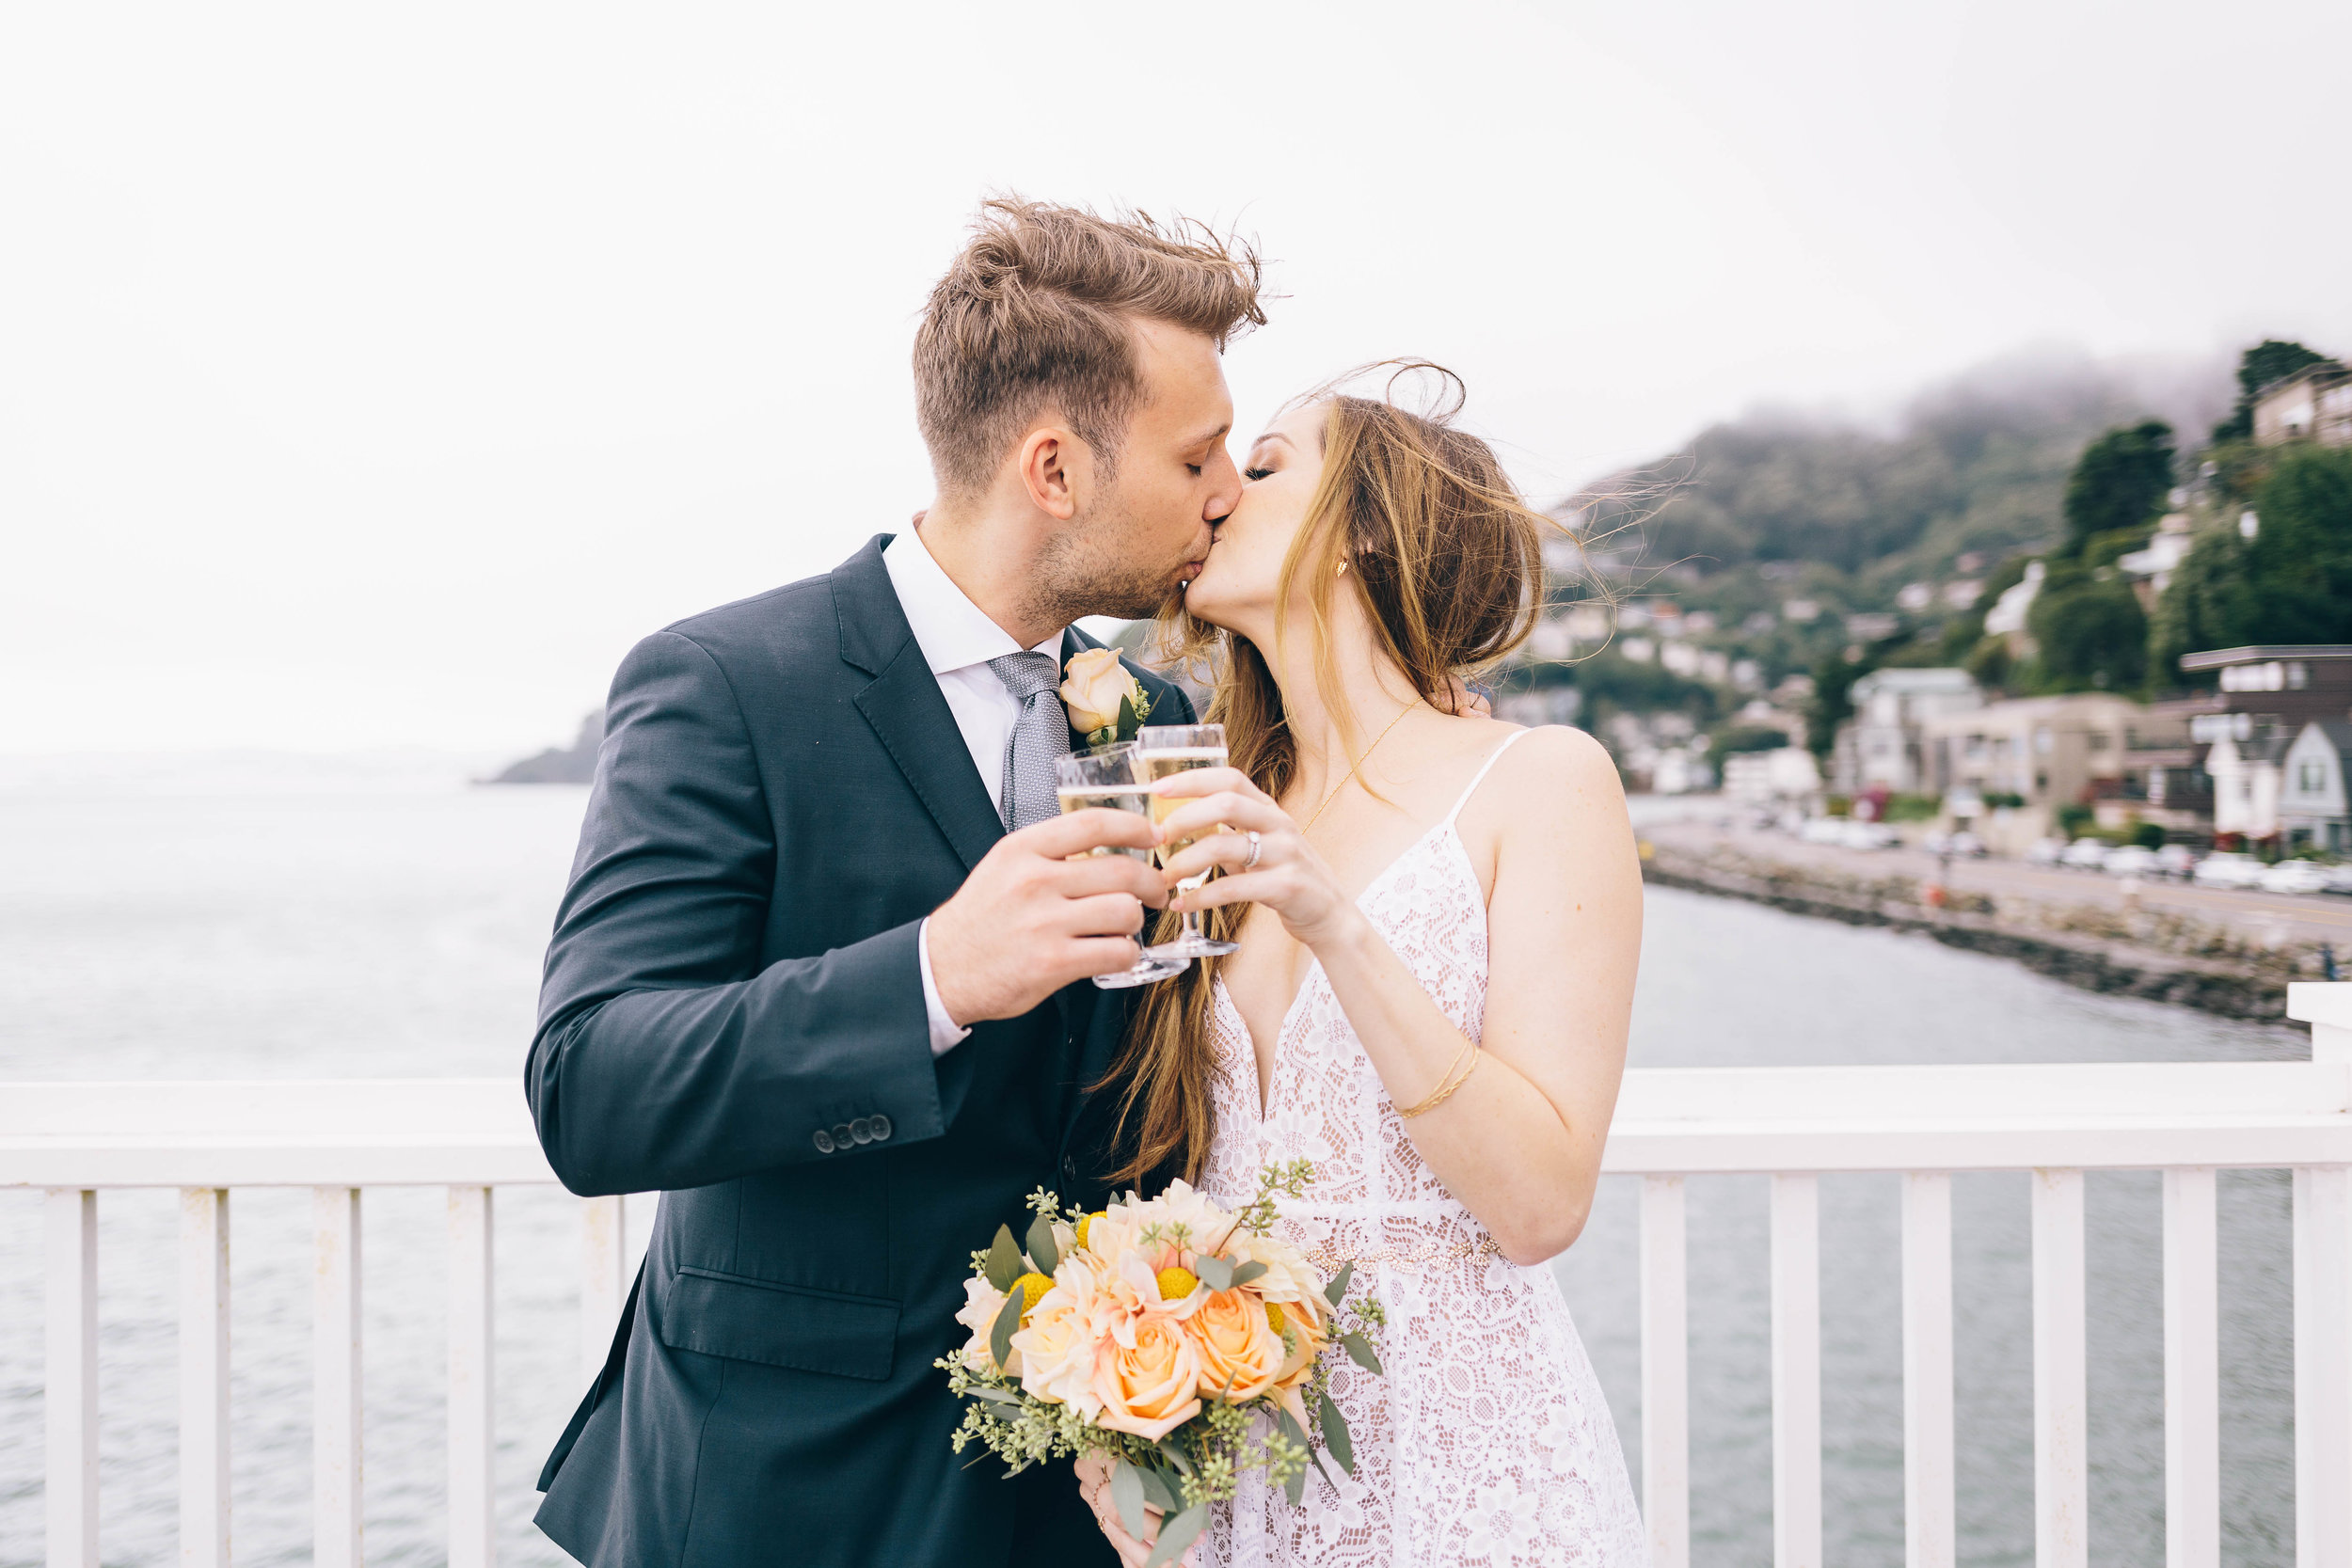 Sausalito Wedding at Ondine Events by JBJ Pictures - Photographer in Sausalito and Marin County - Engagment & Wedding Photography in San Francisco, Marin, Sonoma, and Napa (38).jpg